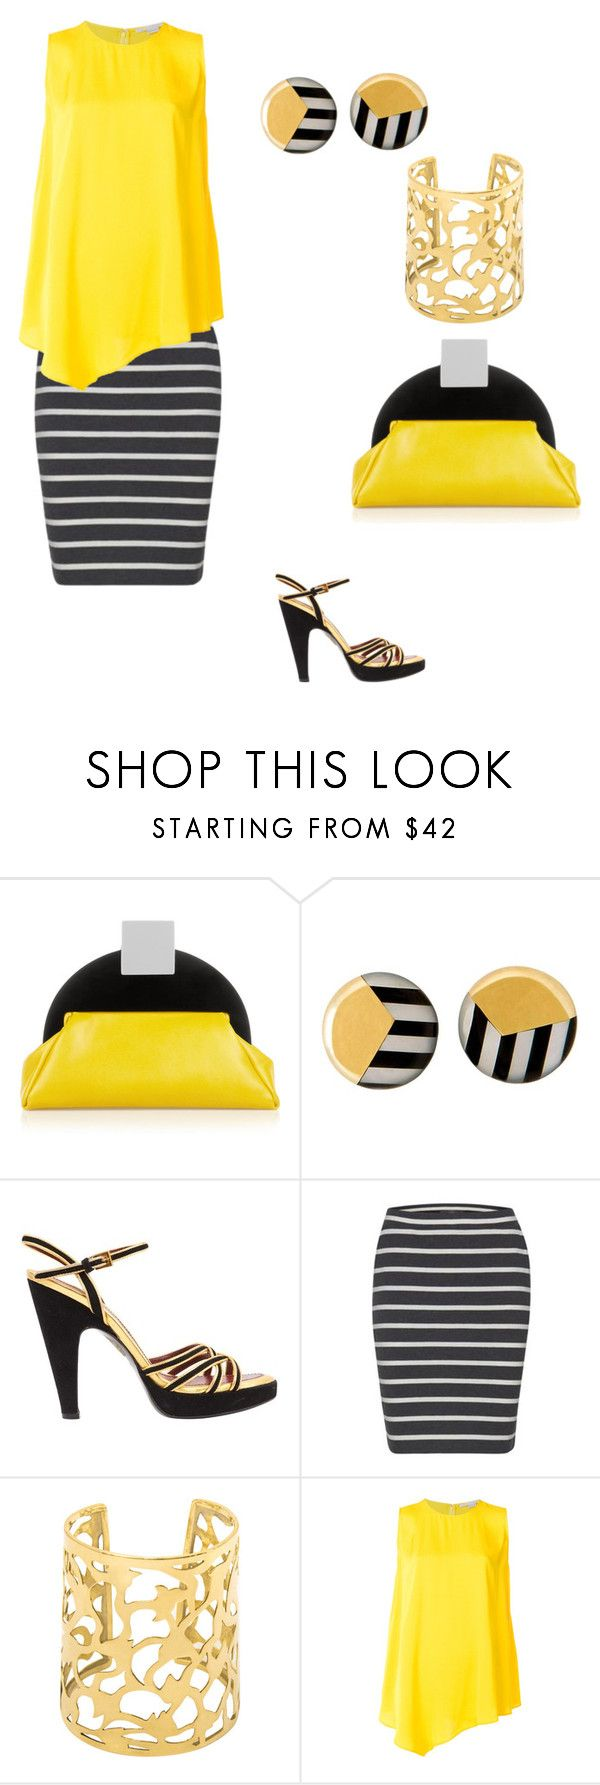 """Untitled #139"" by miharadef on Polyvore featuring Prada and STELLA McCARTNEY"